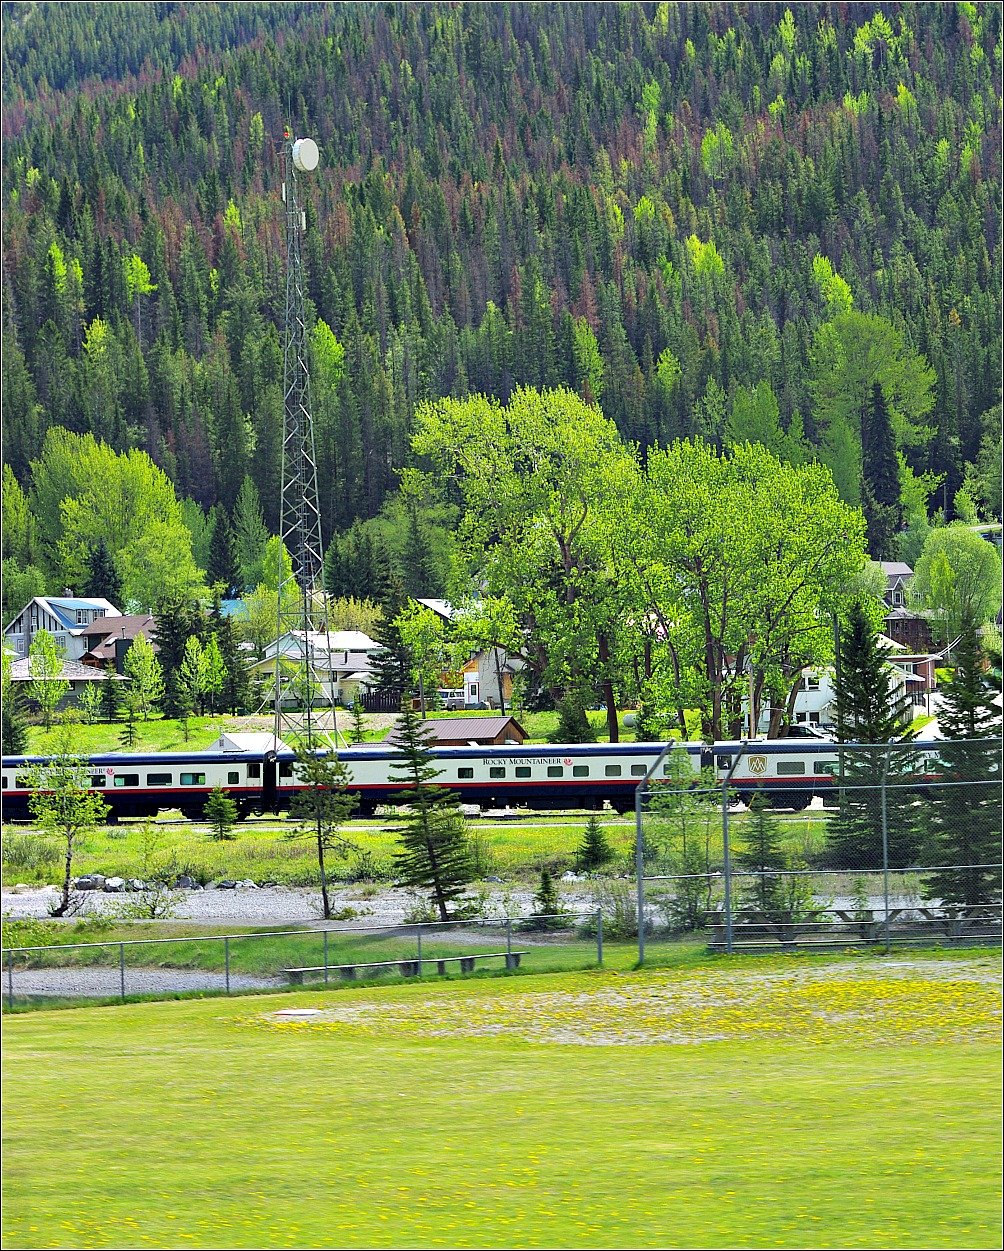 Train at the Town of Field near Emerald Lake Kicking Horse Pass